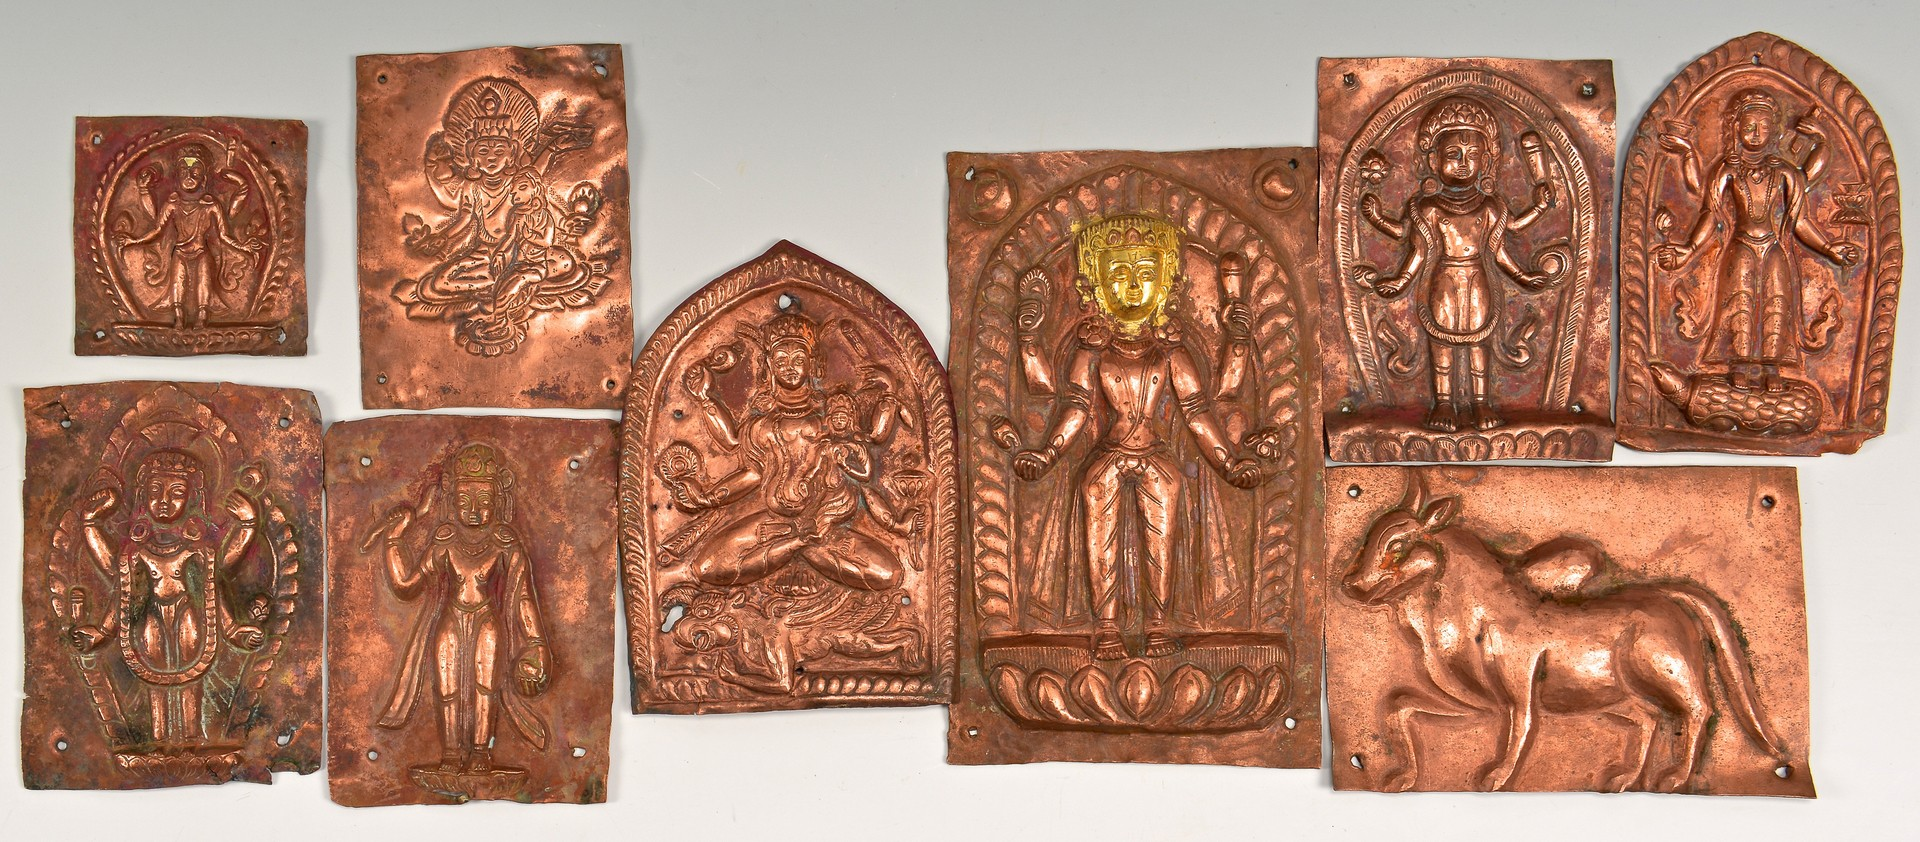 Lot 4010122: 13 Tibetan/Nepalese Items, incl. 9 Copper Plaques